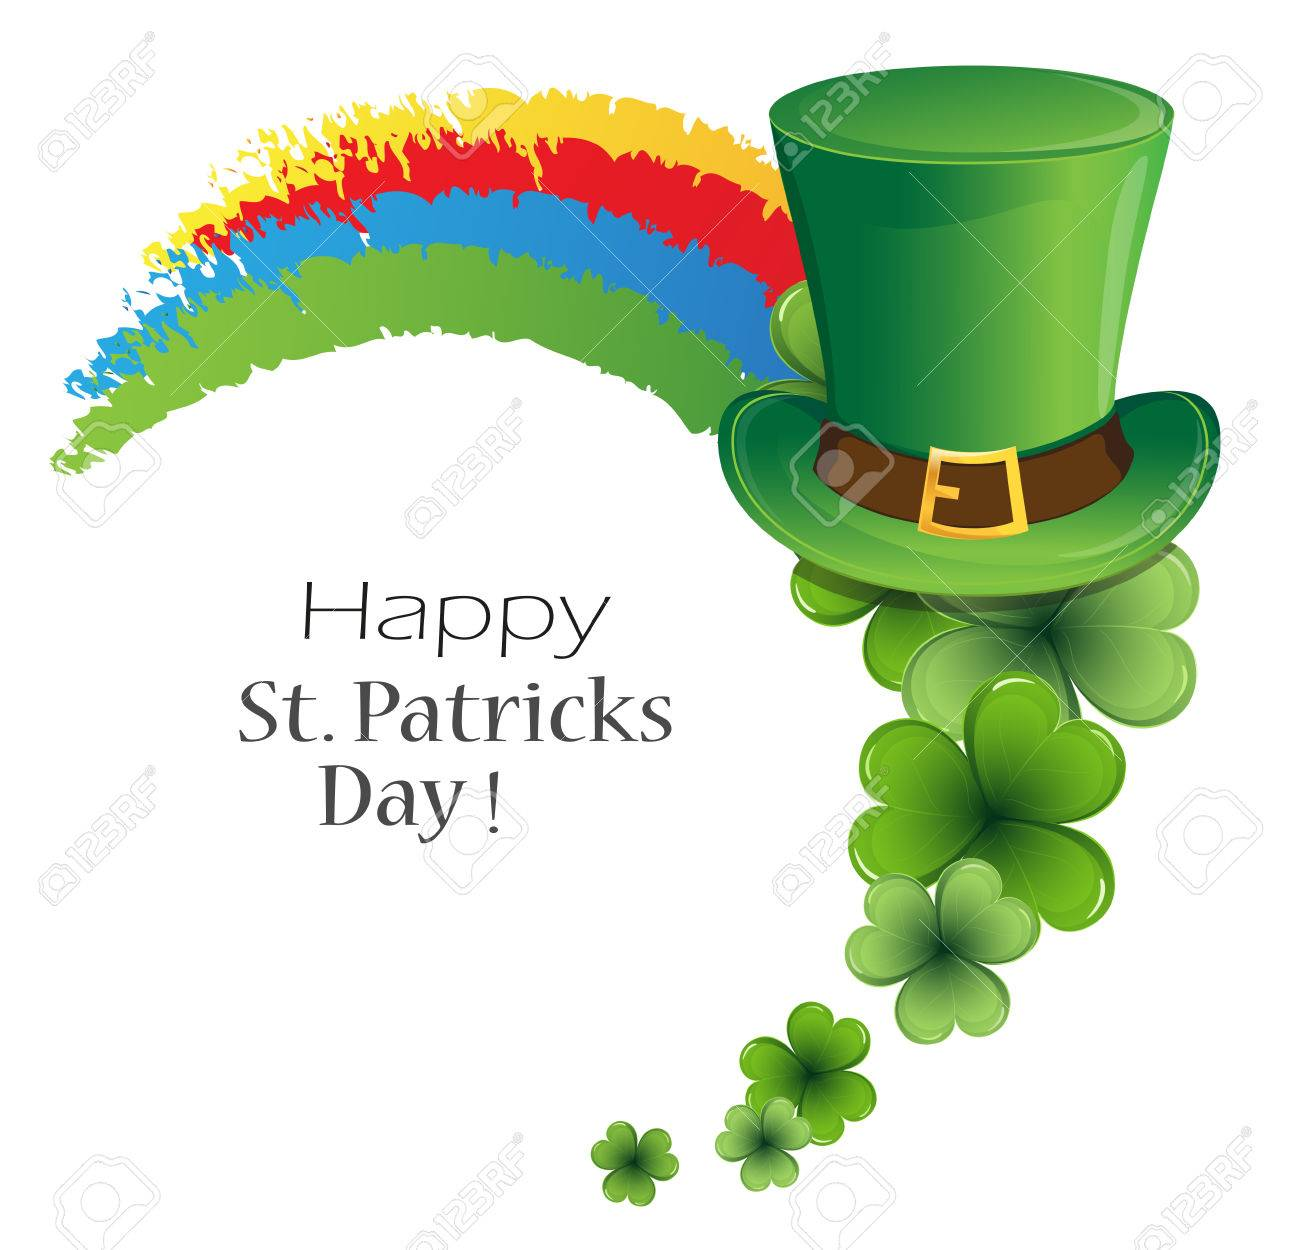 Rainbow, bowler hat and clover on white background. St. Patrick's Day symbol - 53172868